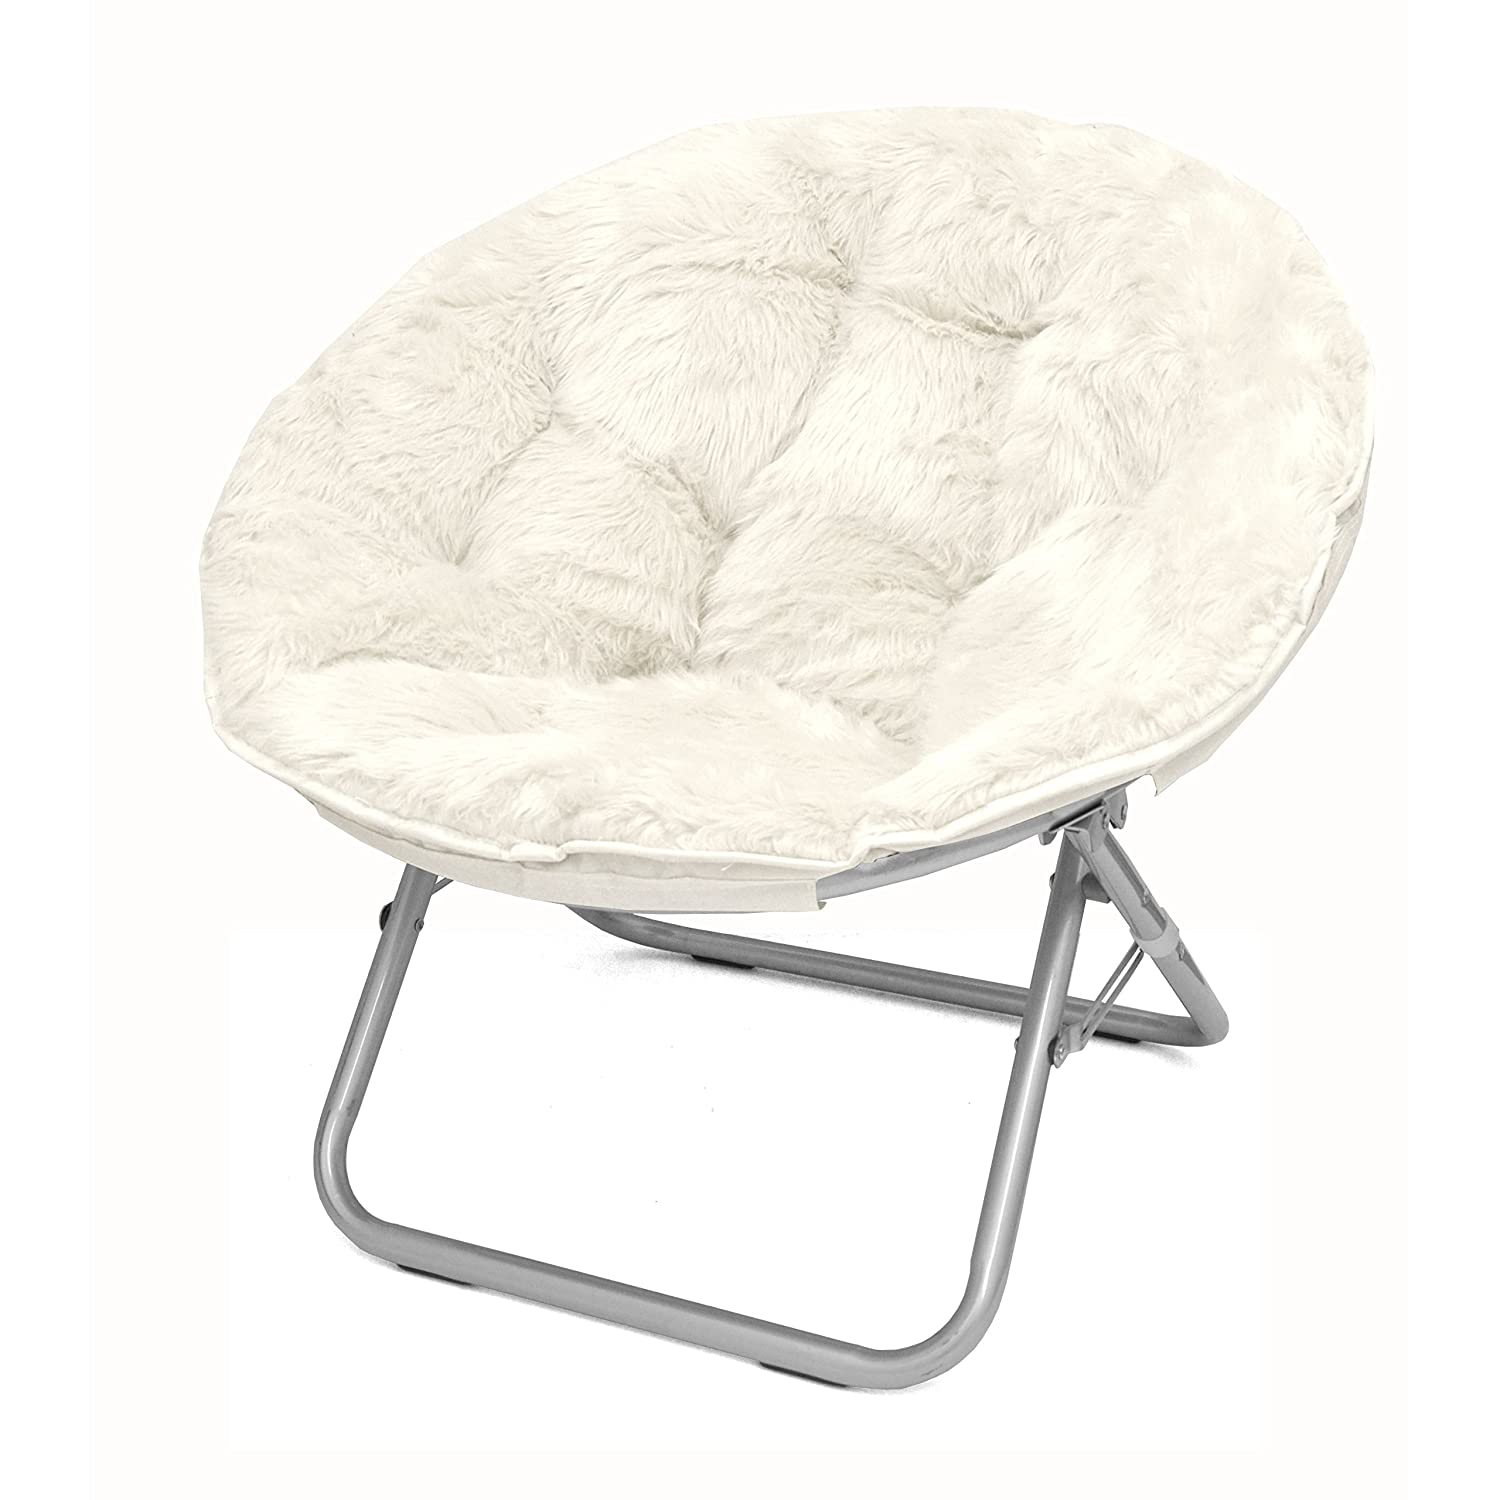 Amazing Mainstays Adult Faux Fur Saucer Chair 1 White Squirreltailoven Fun Painted Chair Ideas Images Squirreltailovenorg